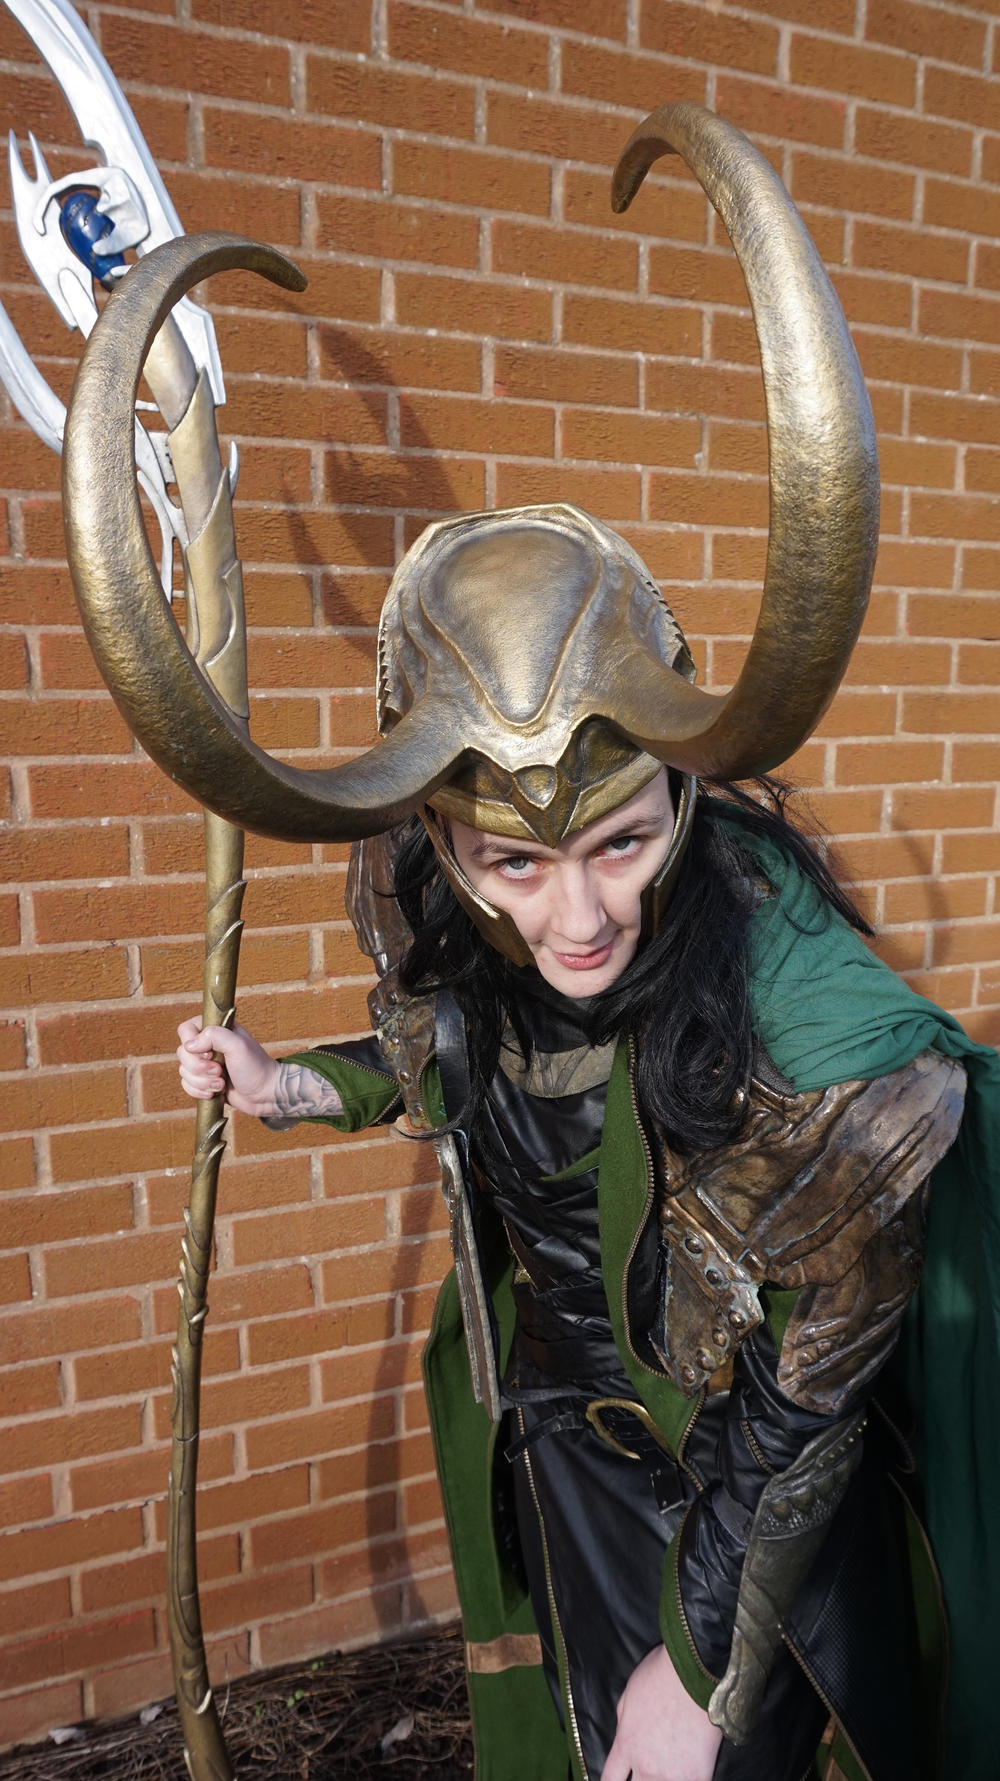 Louis Perring AKA Loki Lou as Loki